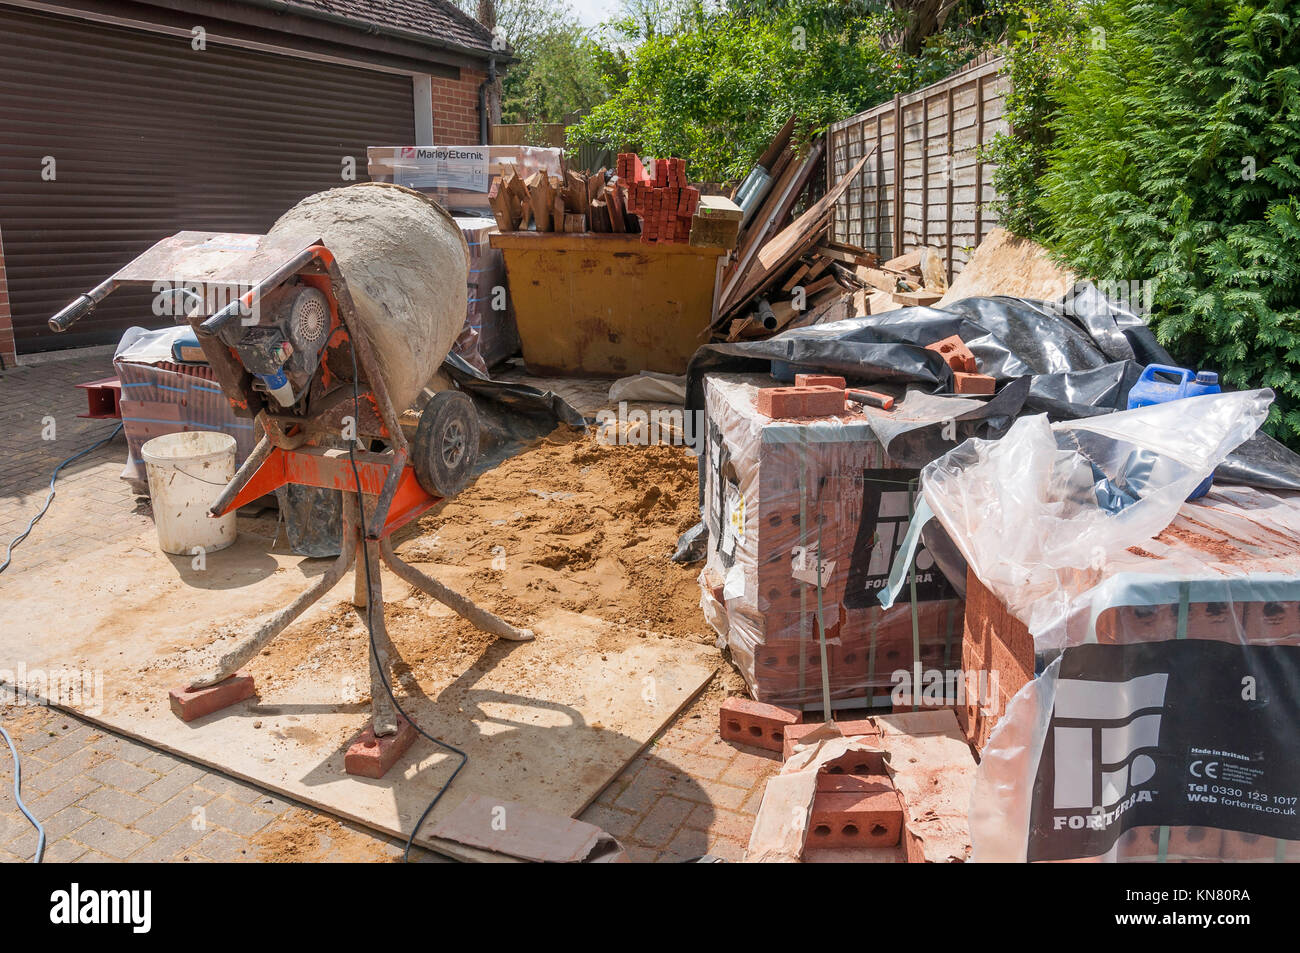 Builder's work station with concrete mixer, sand, bricks and timber, Hungerford, Berkshire, England, United - Stock Image